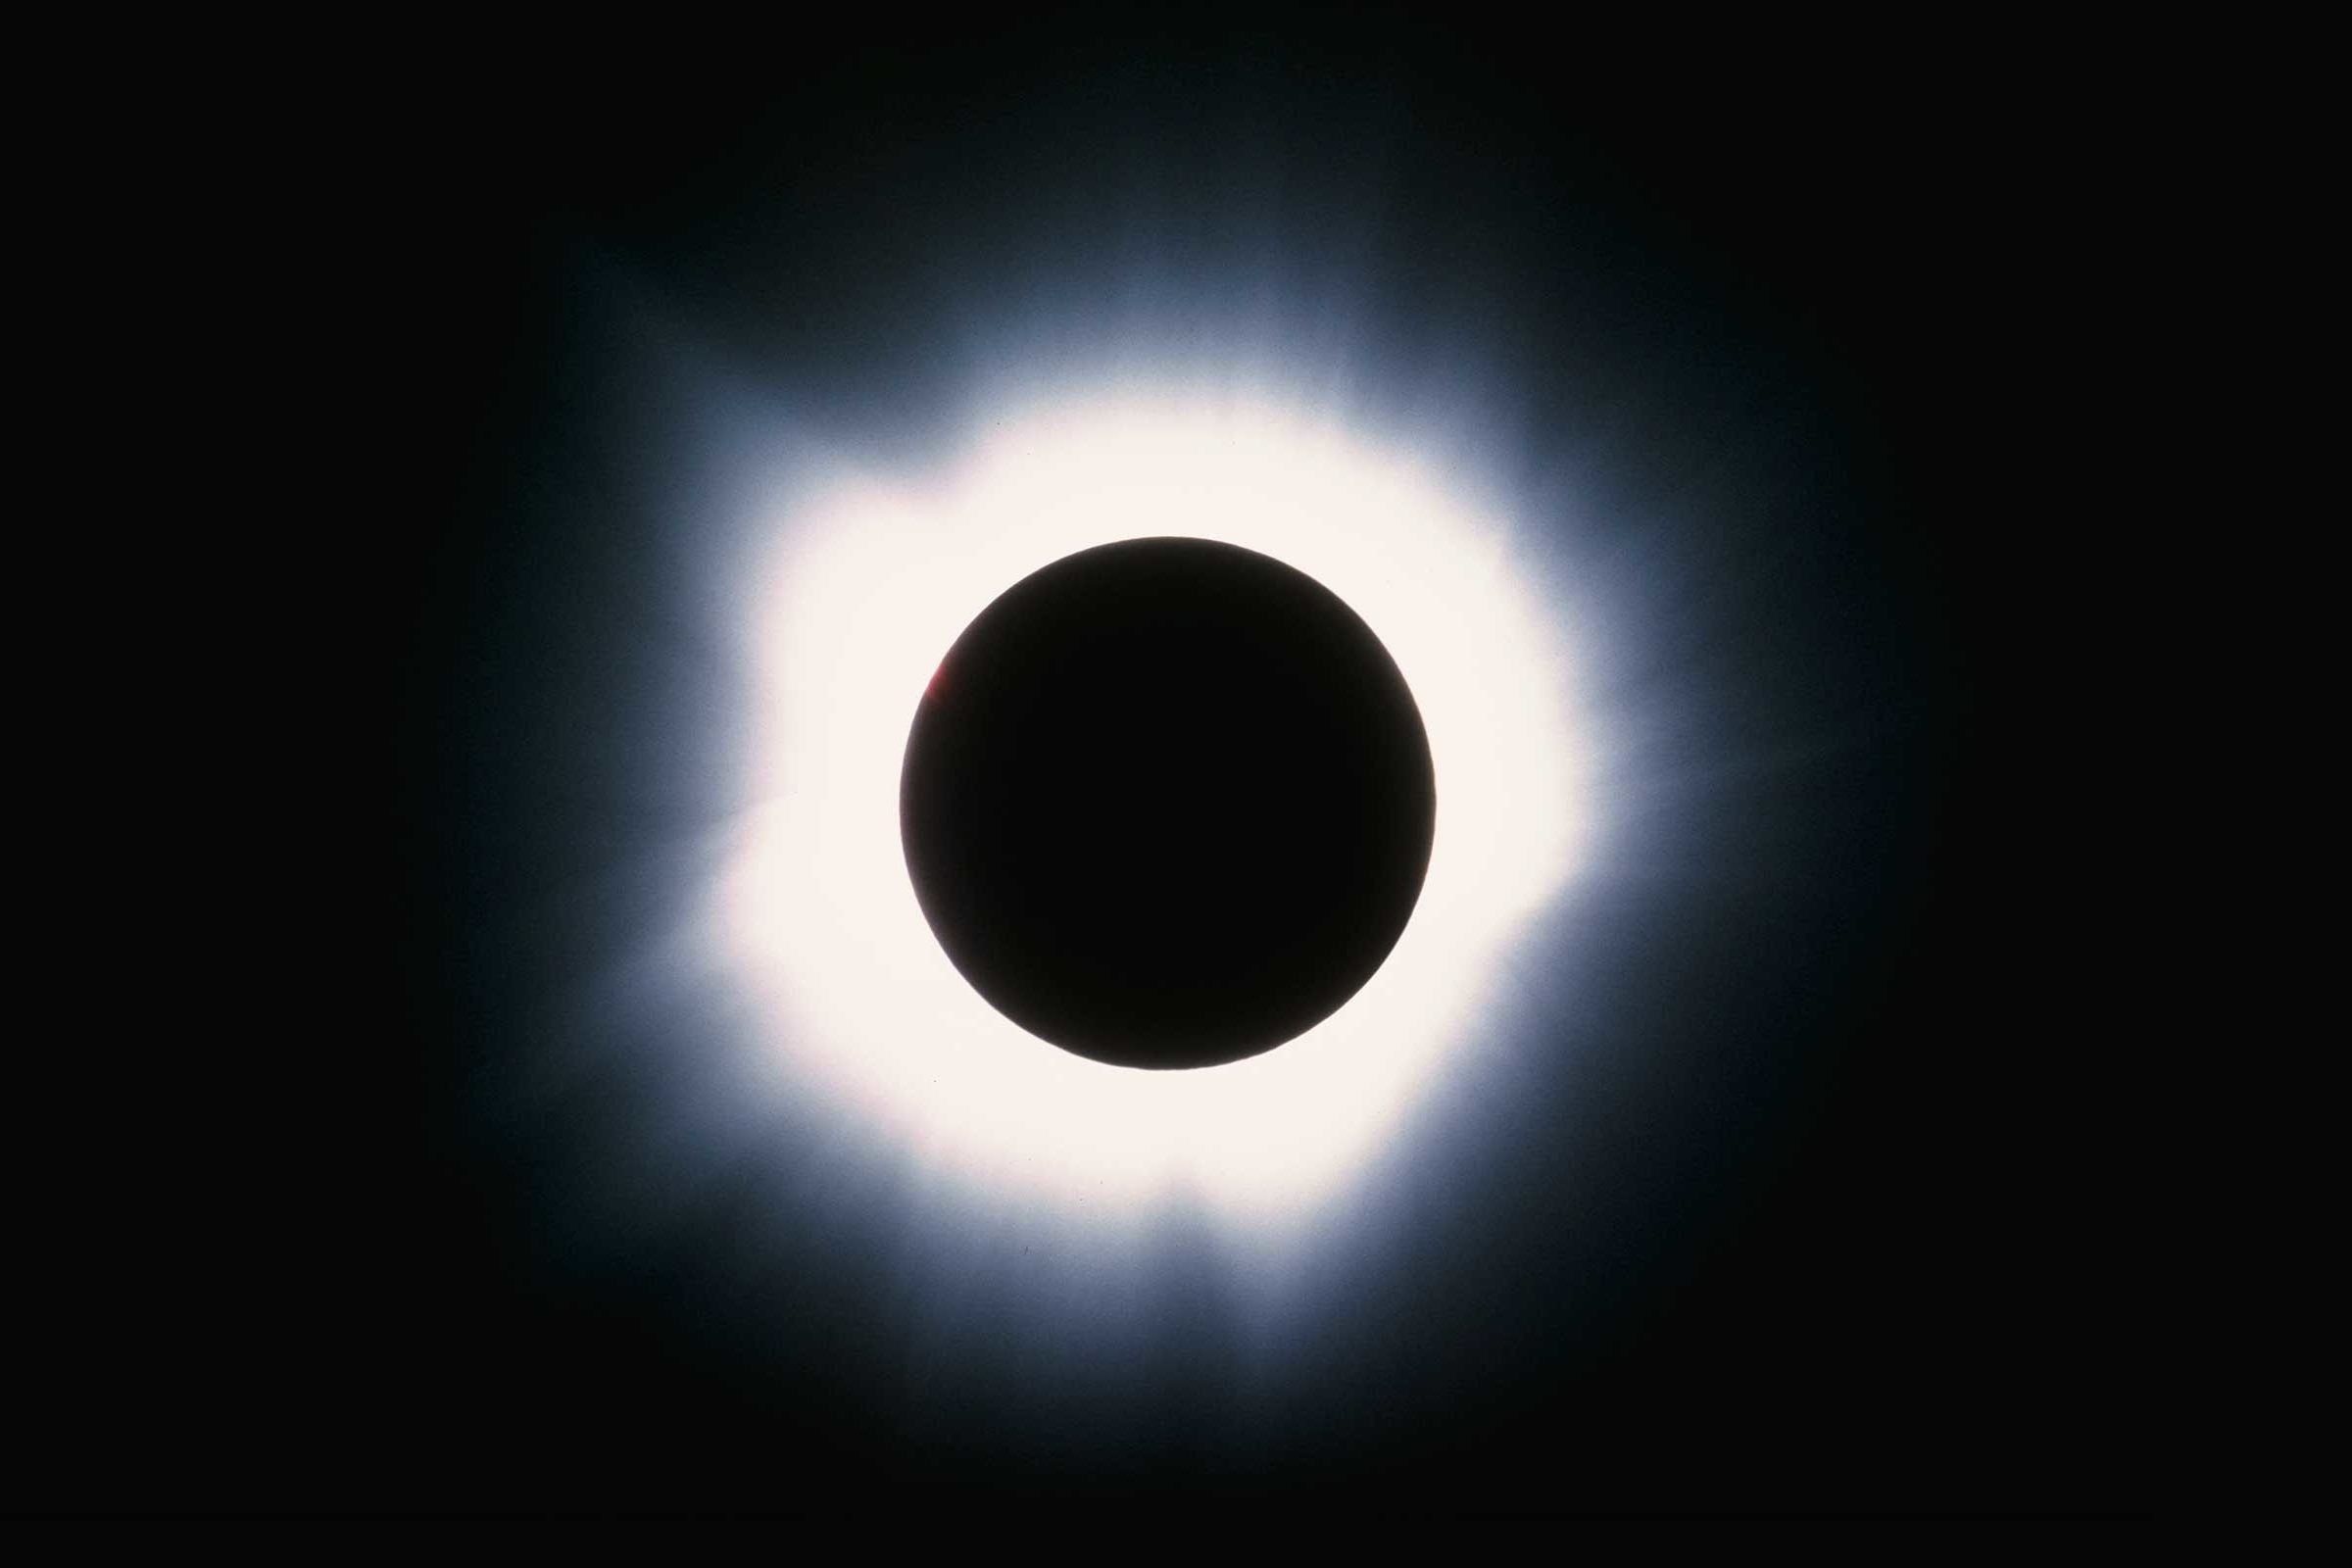 Climate & Space Ph.D student travels to Chile for total solar eclipse research